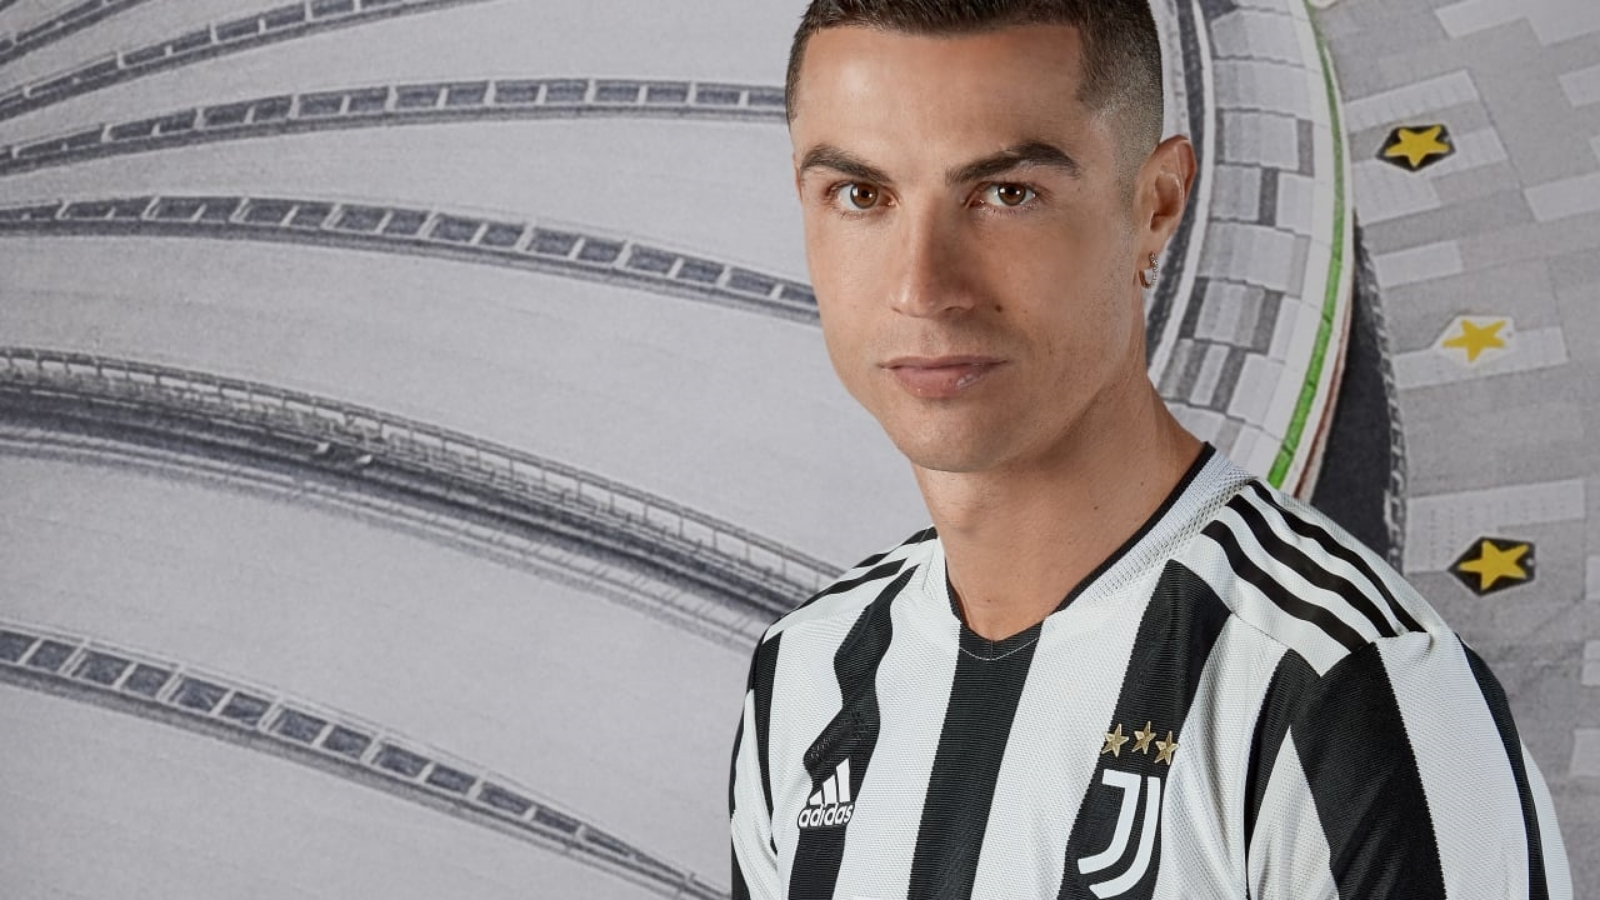 Juventus 2021-22 kit: New home and away jersey styles & release dates